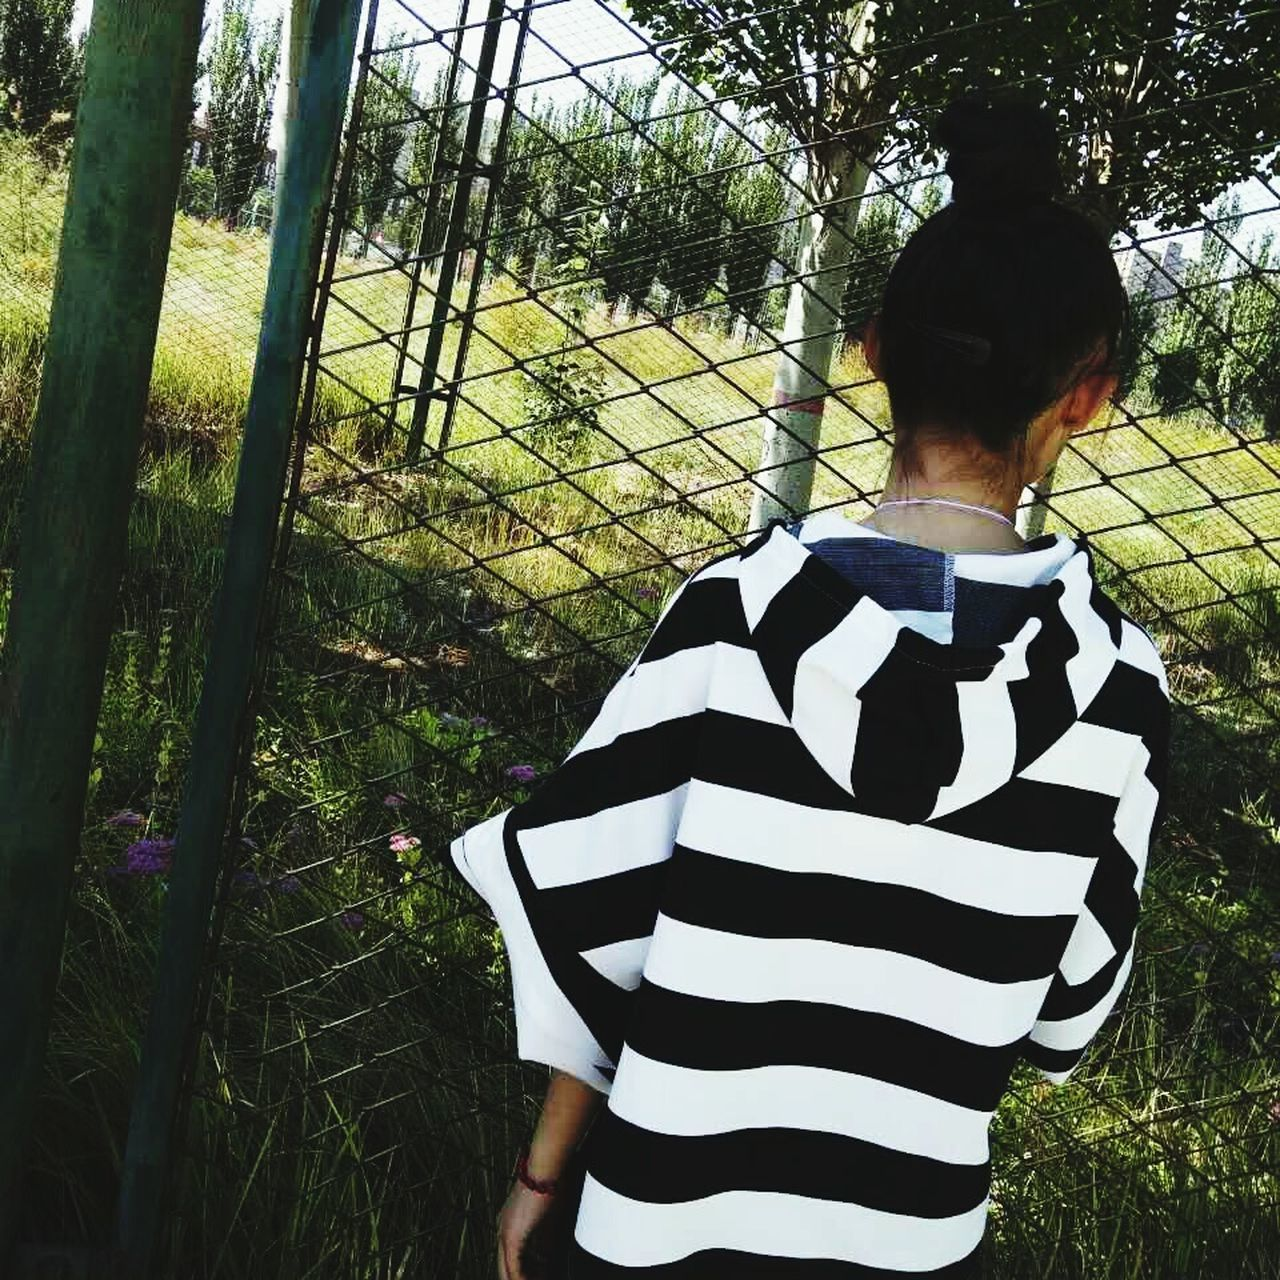 rear view, striped, real people, tree, one person, leisure activity, casual clothing, day, lifestyles, standing, outdoors, nature, growth, women, grass, beauty in nature, mammal, young adult, sky, people